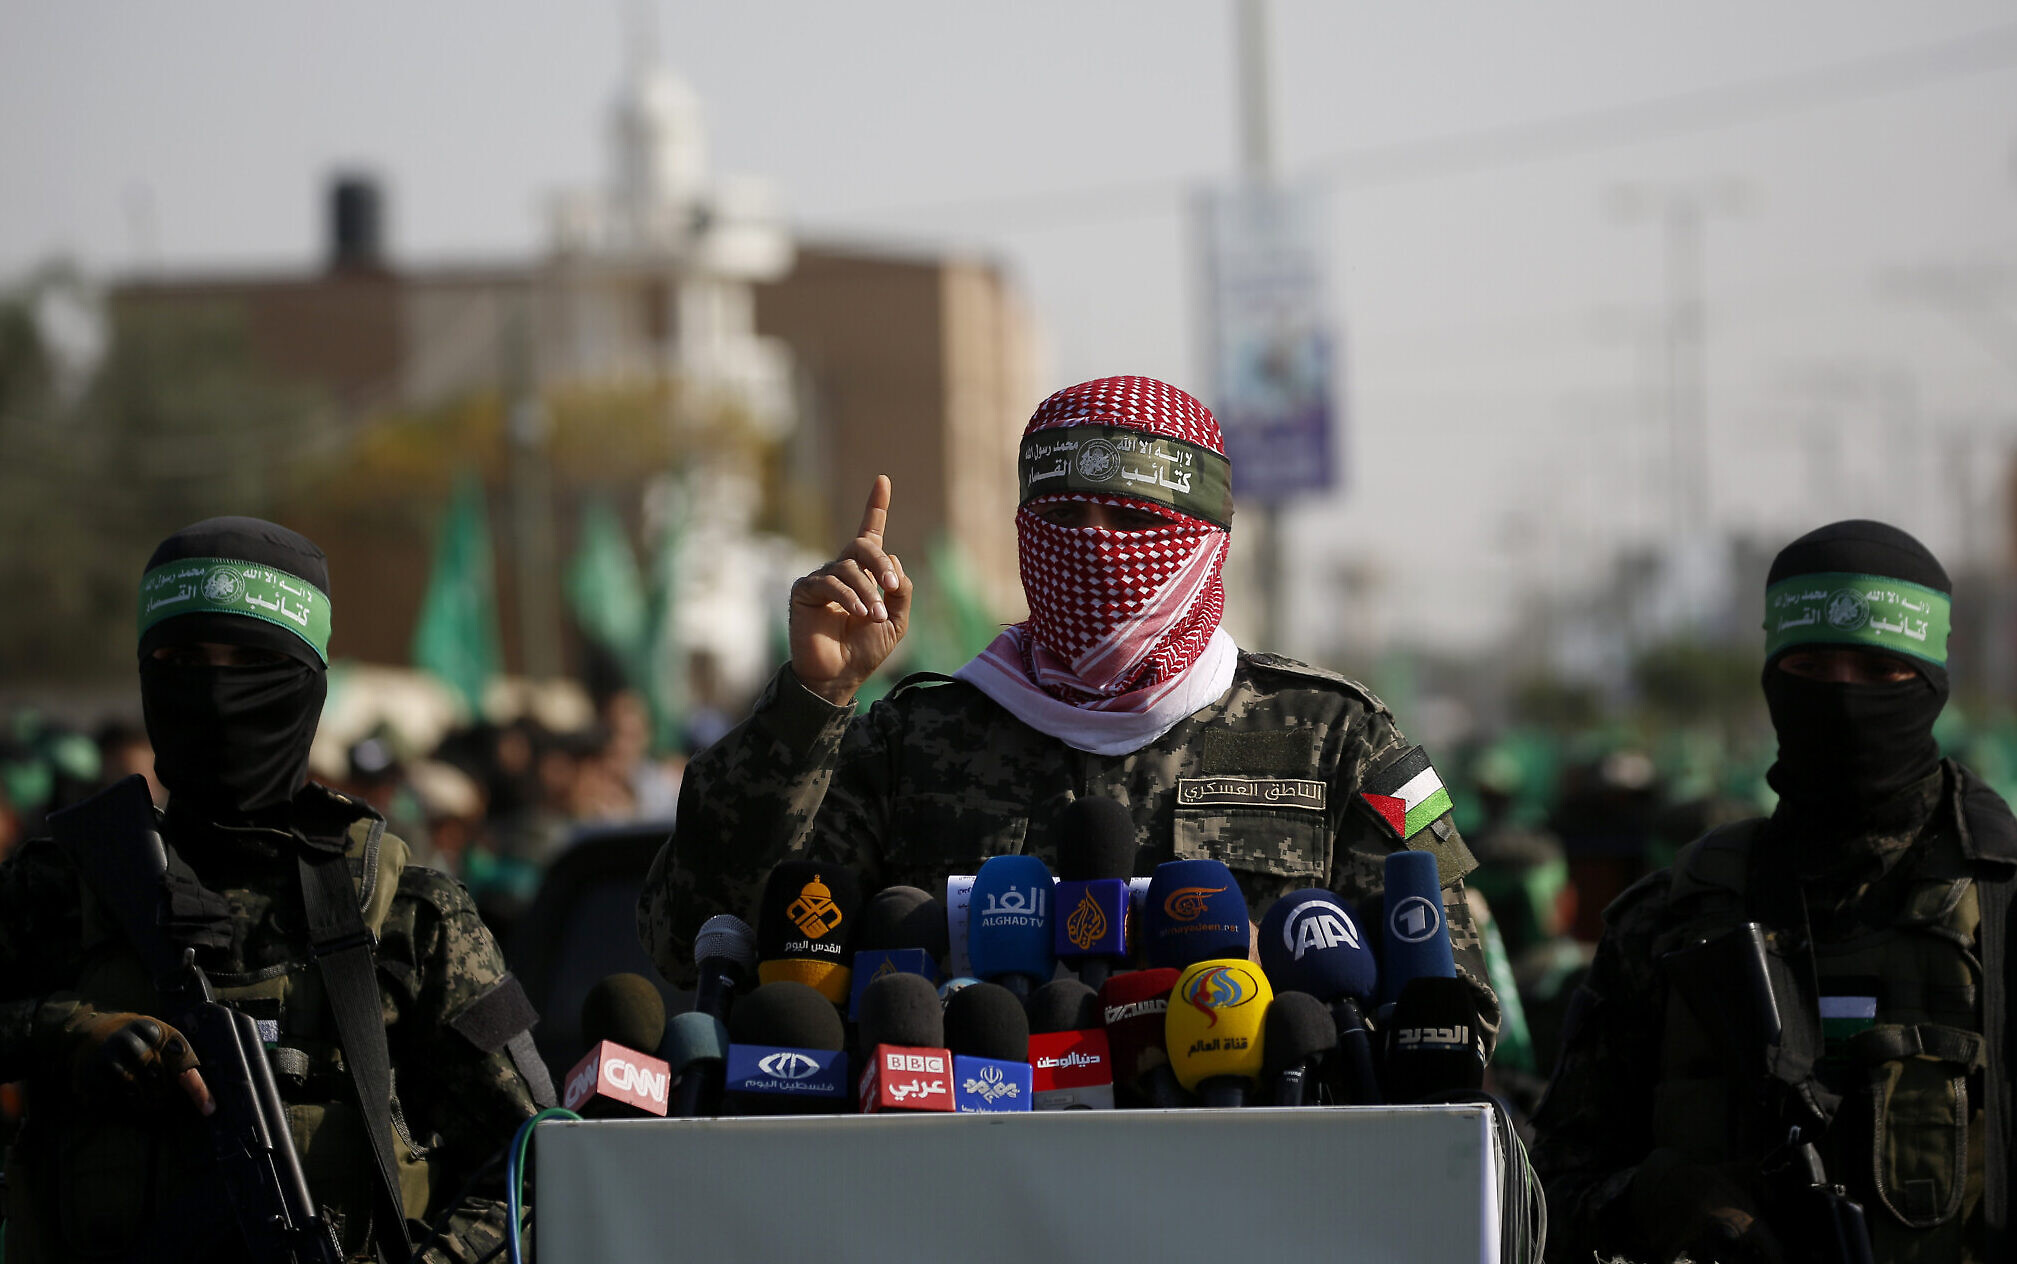 Hamas spokesman thanks Russia for supporting Palestinians